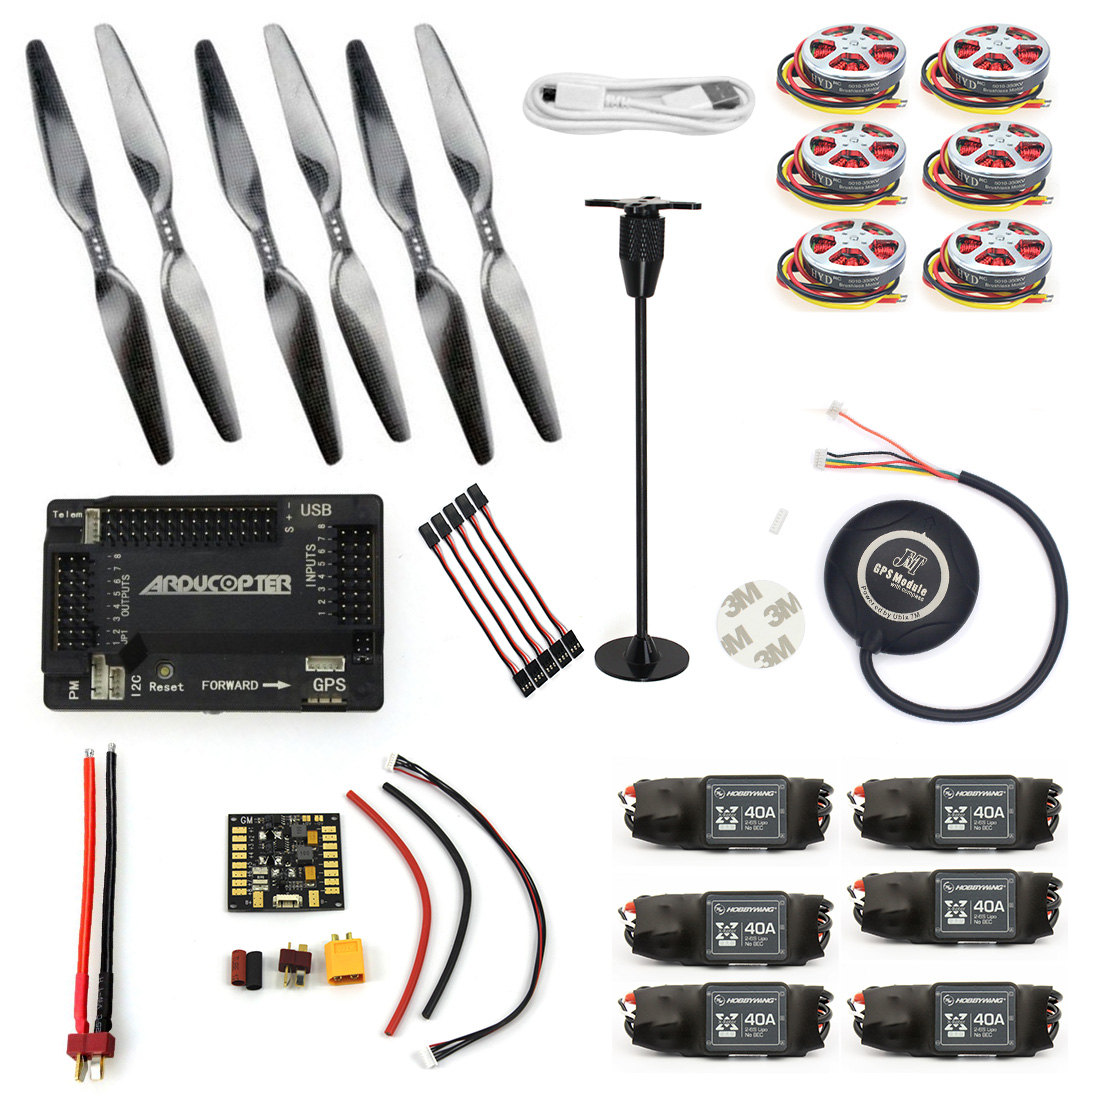 JMT RC HexaCopter Aircraft ARF Electronic:GPS APM2.8 Flight Control 350KV Brushless Motor FMT40A ESC F05423-I f2s flight control with m8n gps t plug xt60 galvanometer for fpv rc fixed wing aircraft